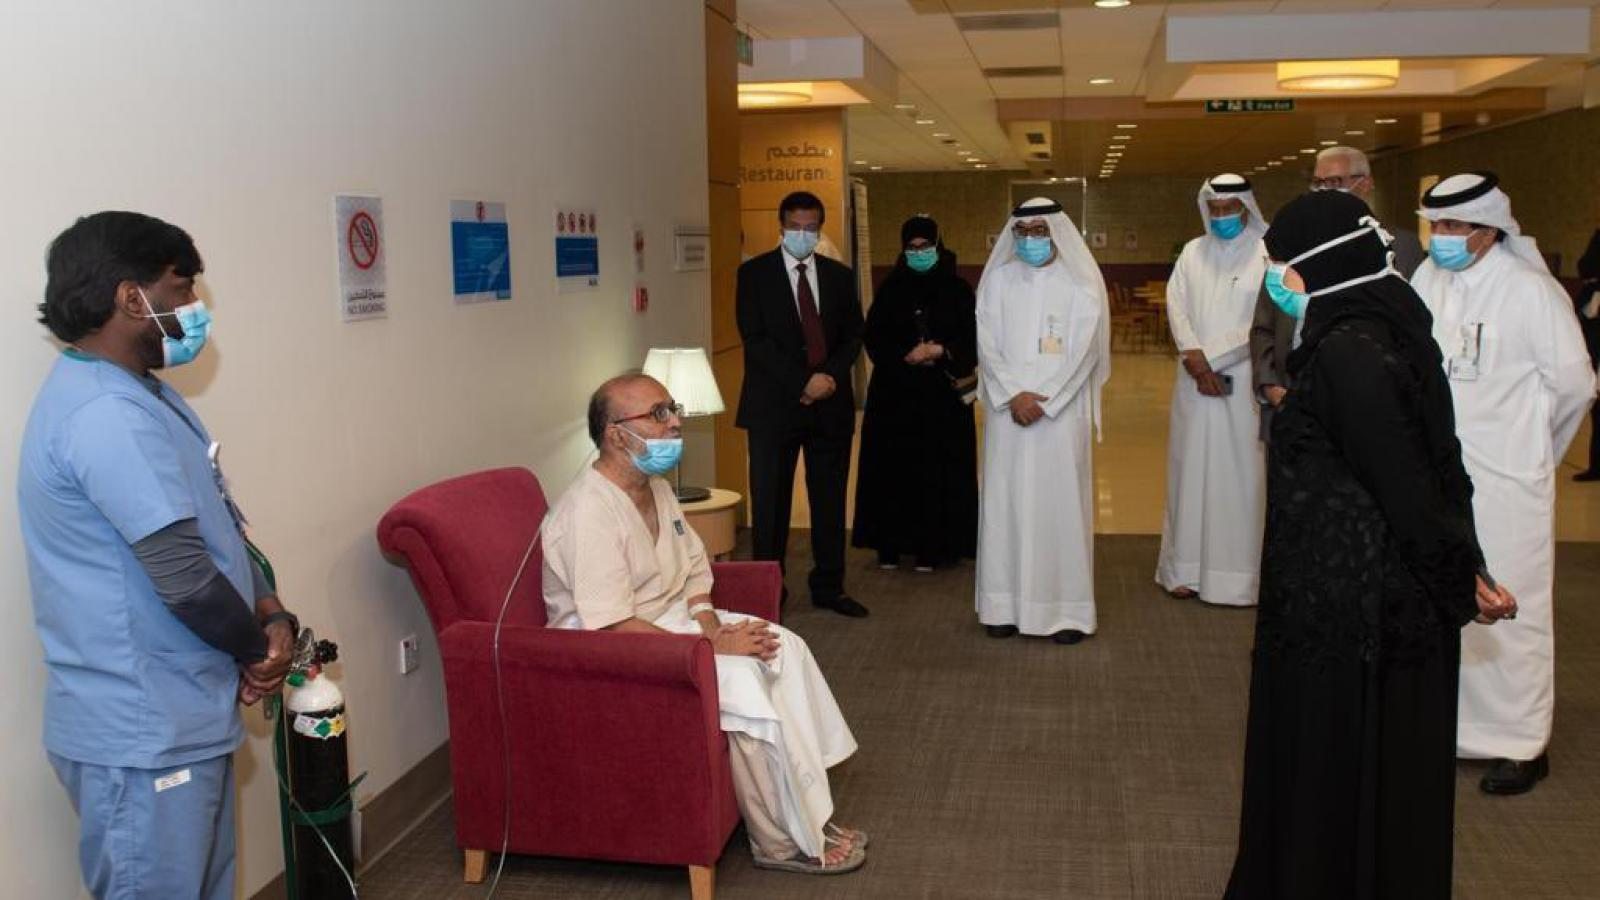 Minister of Public Health visits Surgical Specialty Center as facility discharges last COVID-19 patients